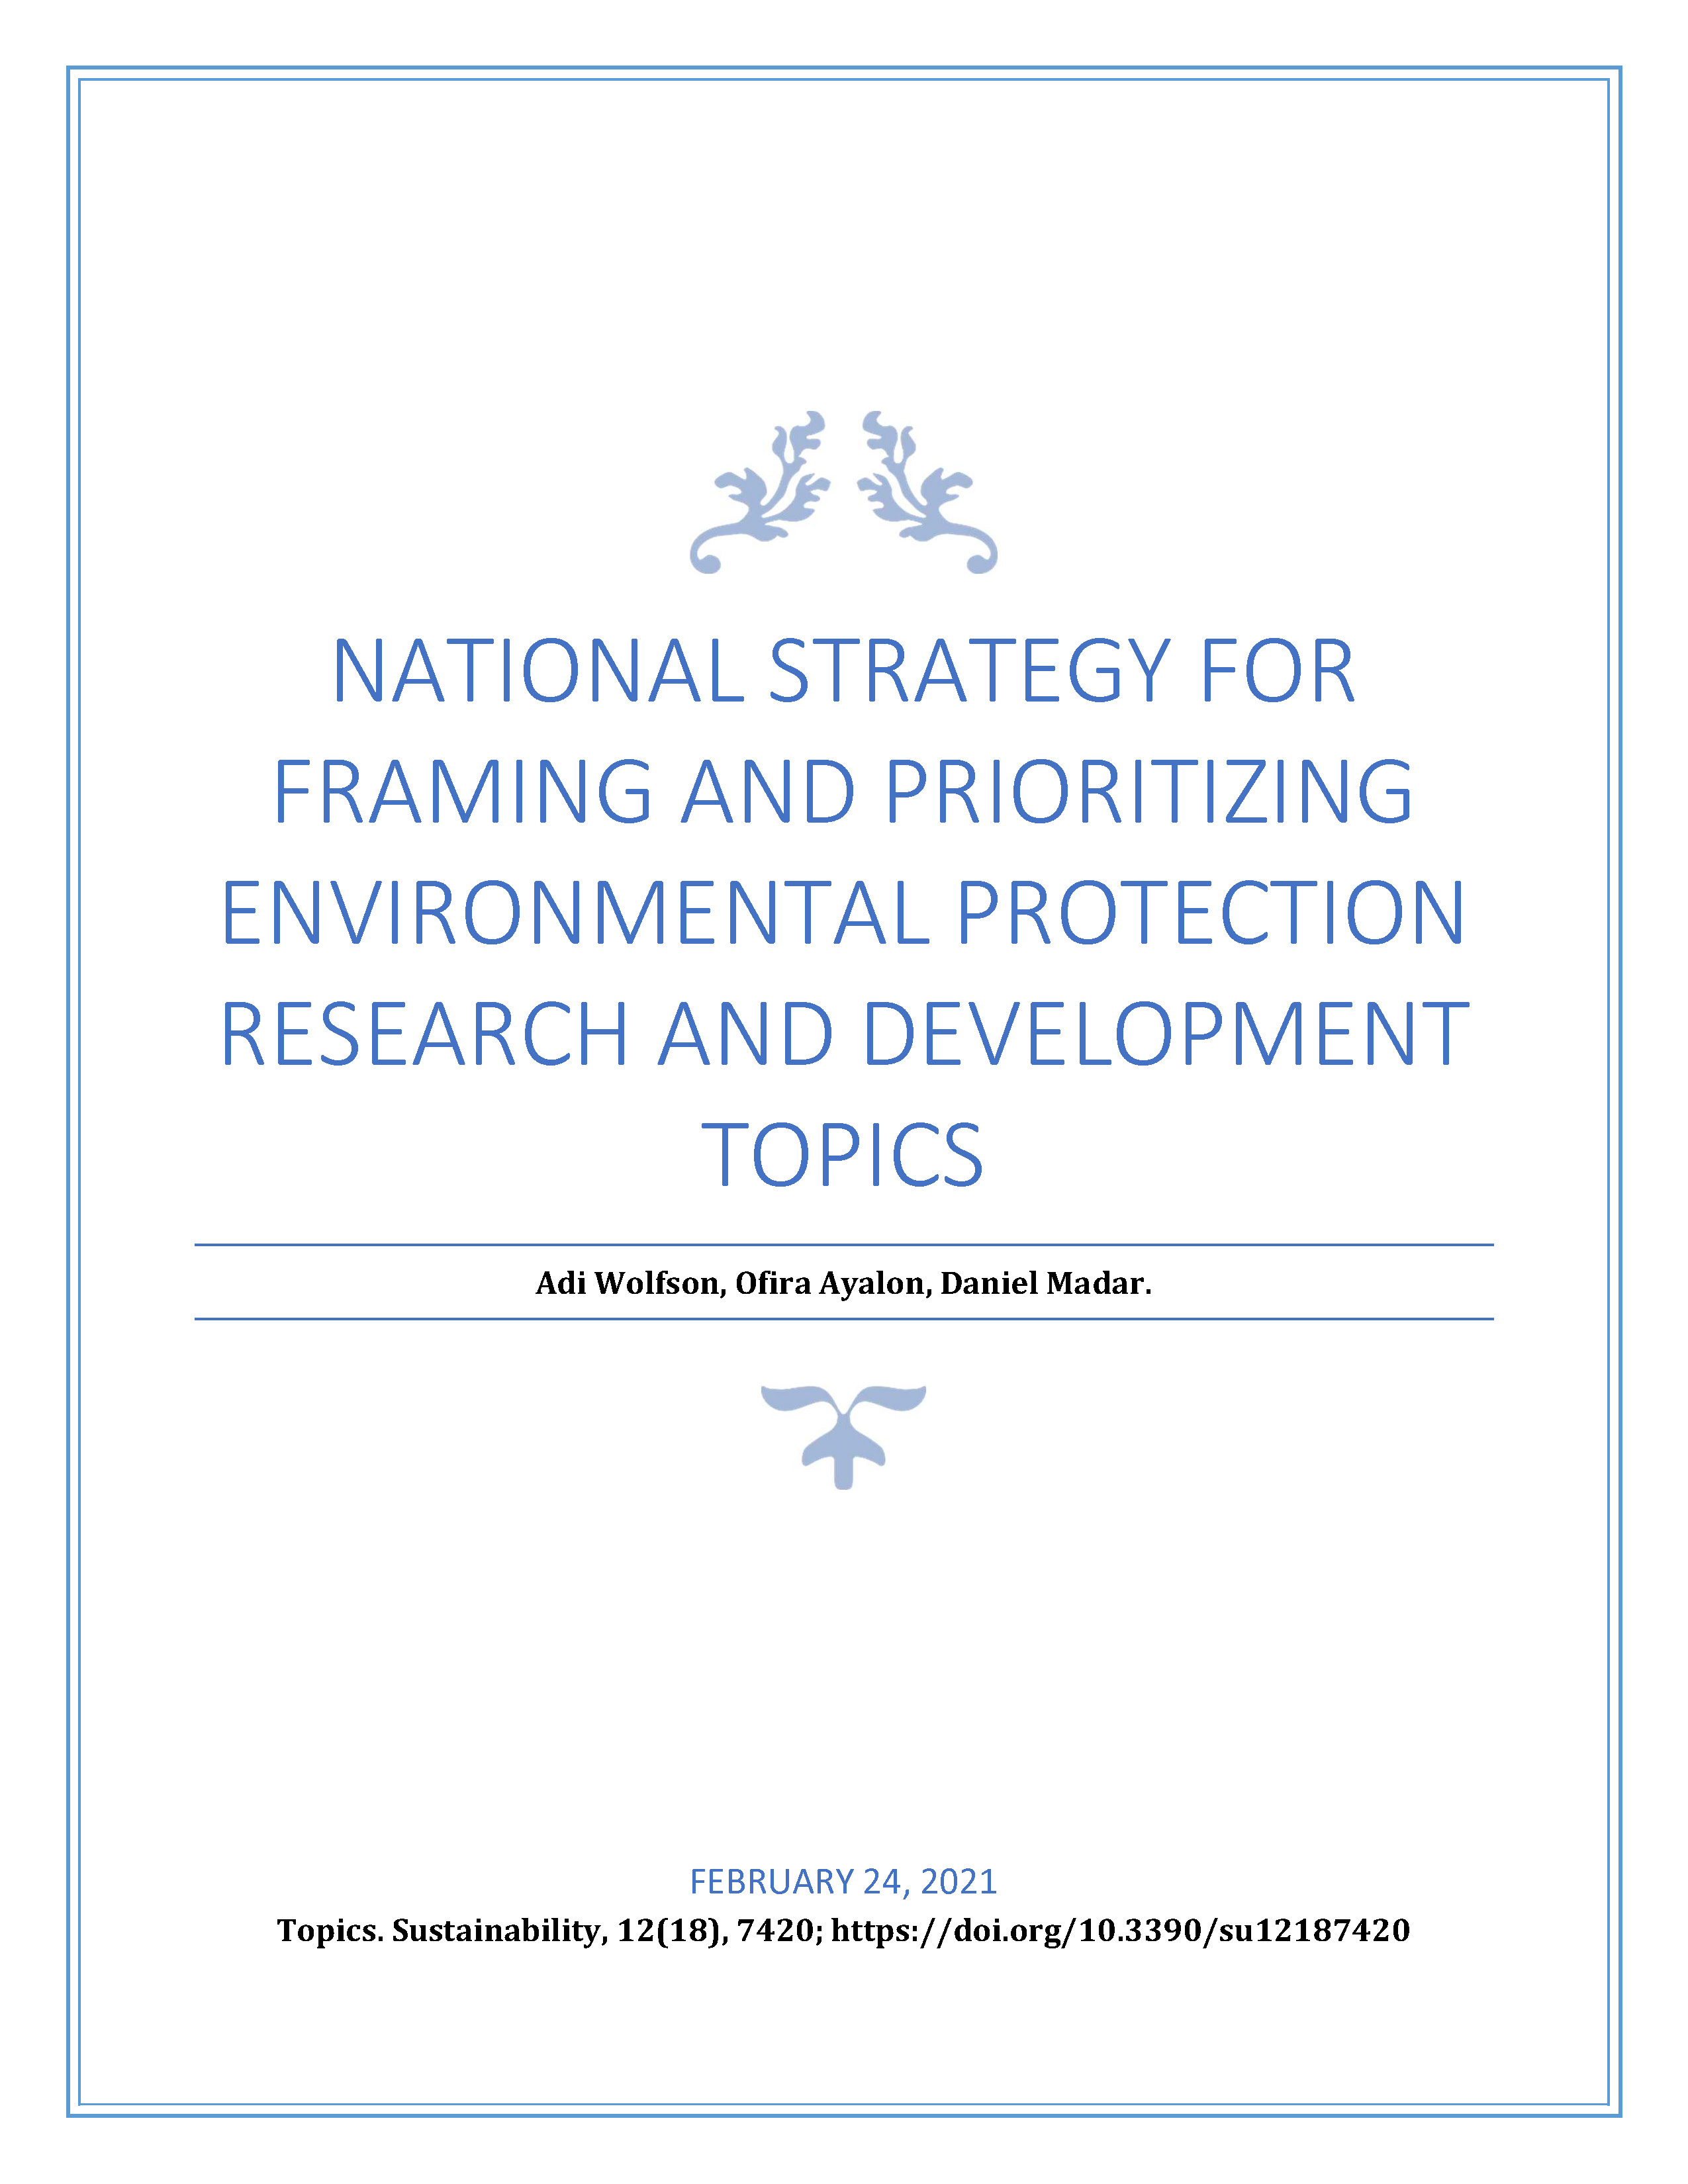 National Strategy for Framing and Prioritizing Environmental Protection Research and Development Topics